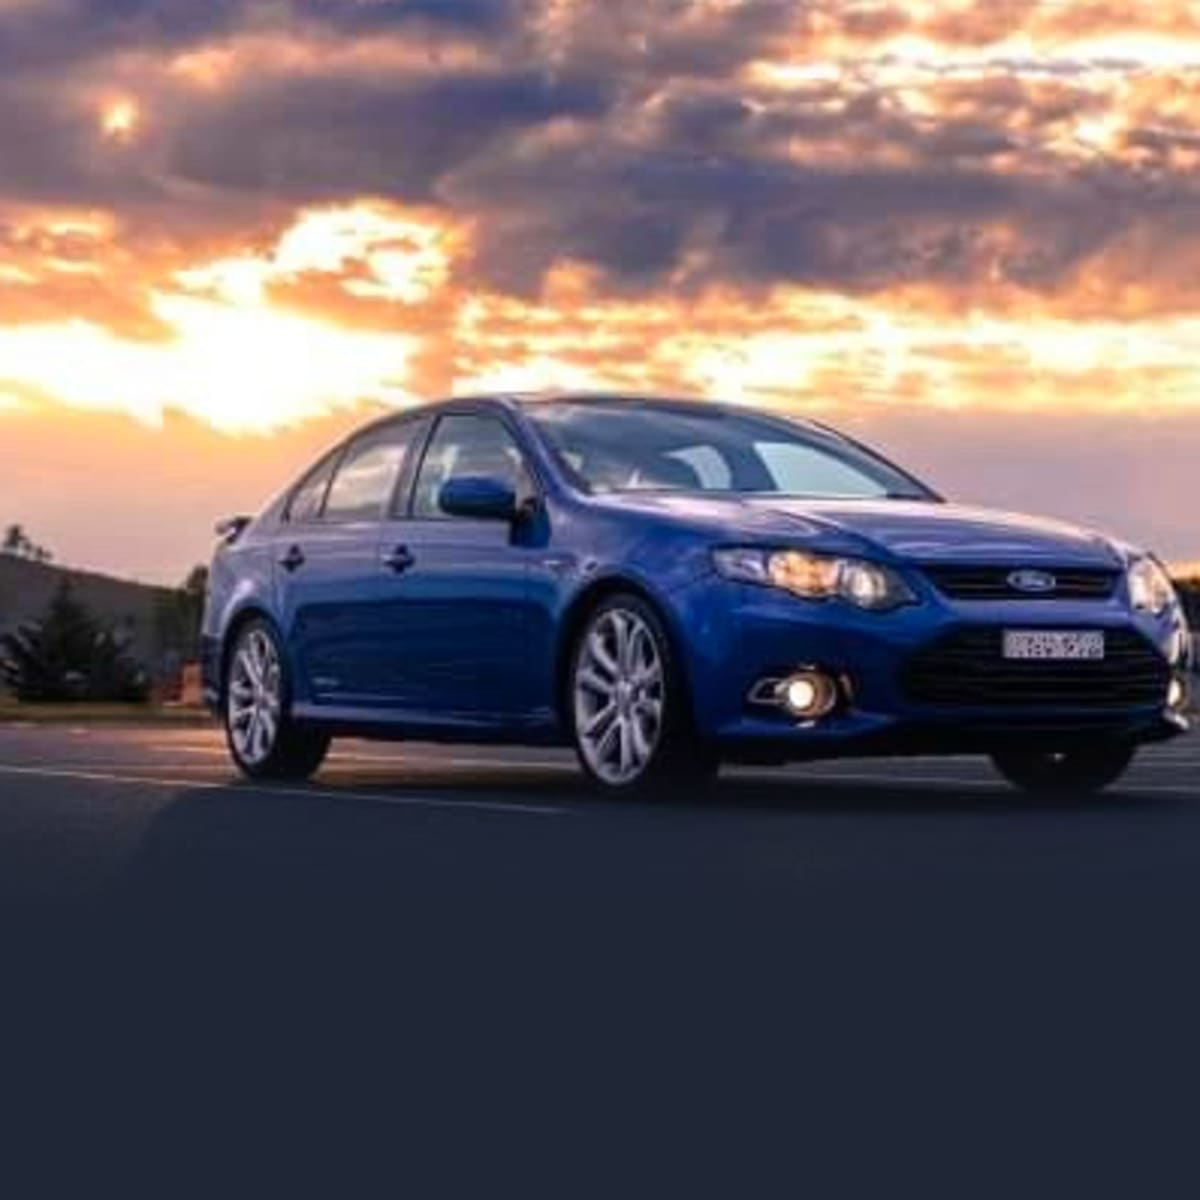 2013 Ford Falcon Xr6t Review Caradvice